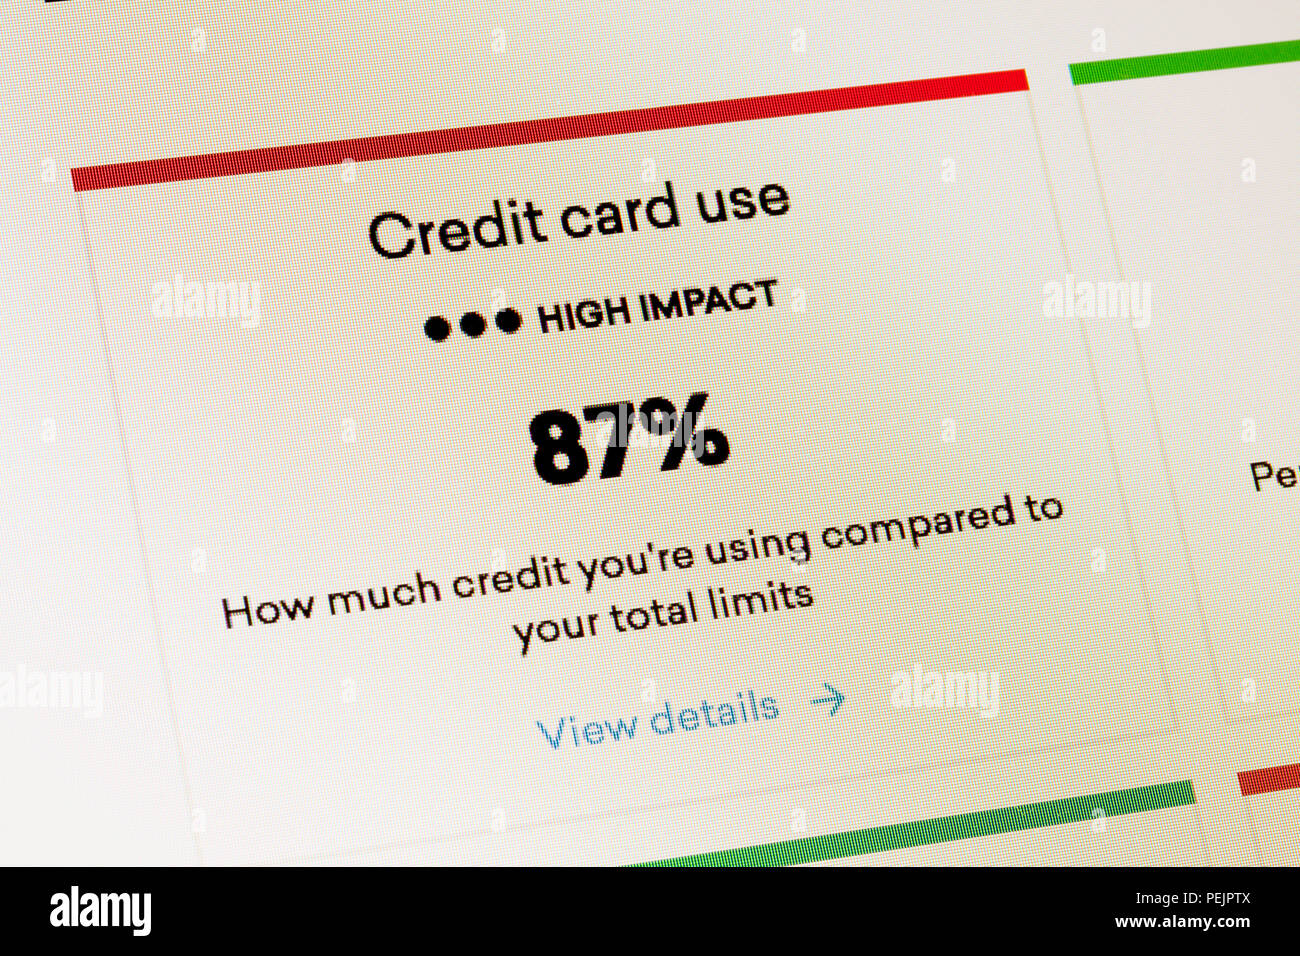 Credit card use impact on FICO credit score rating - USA - Stock Image